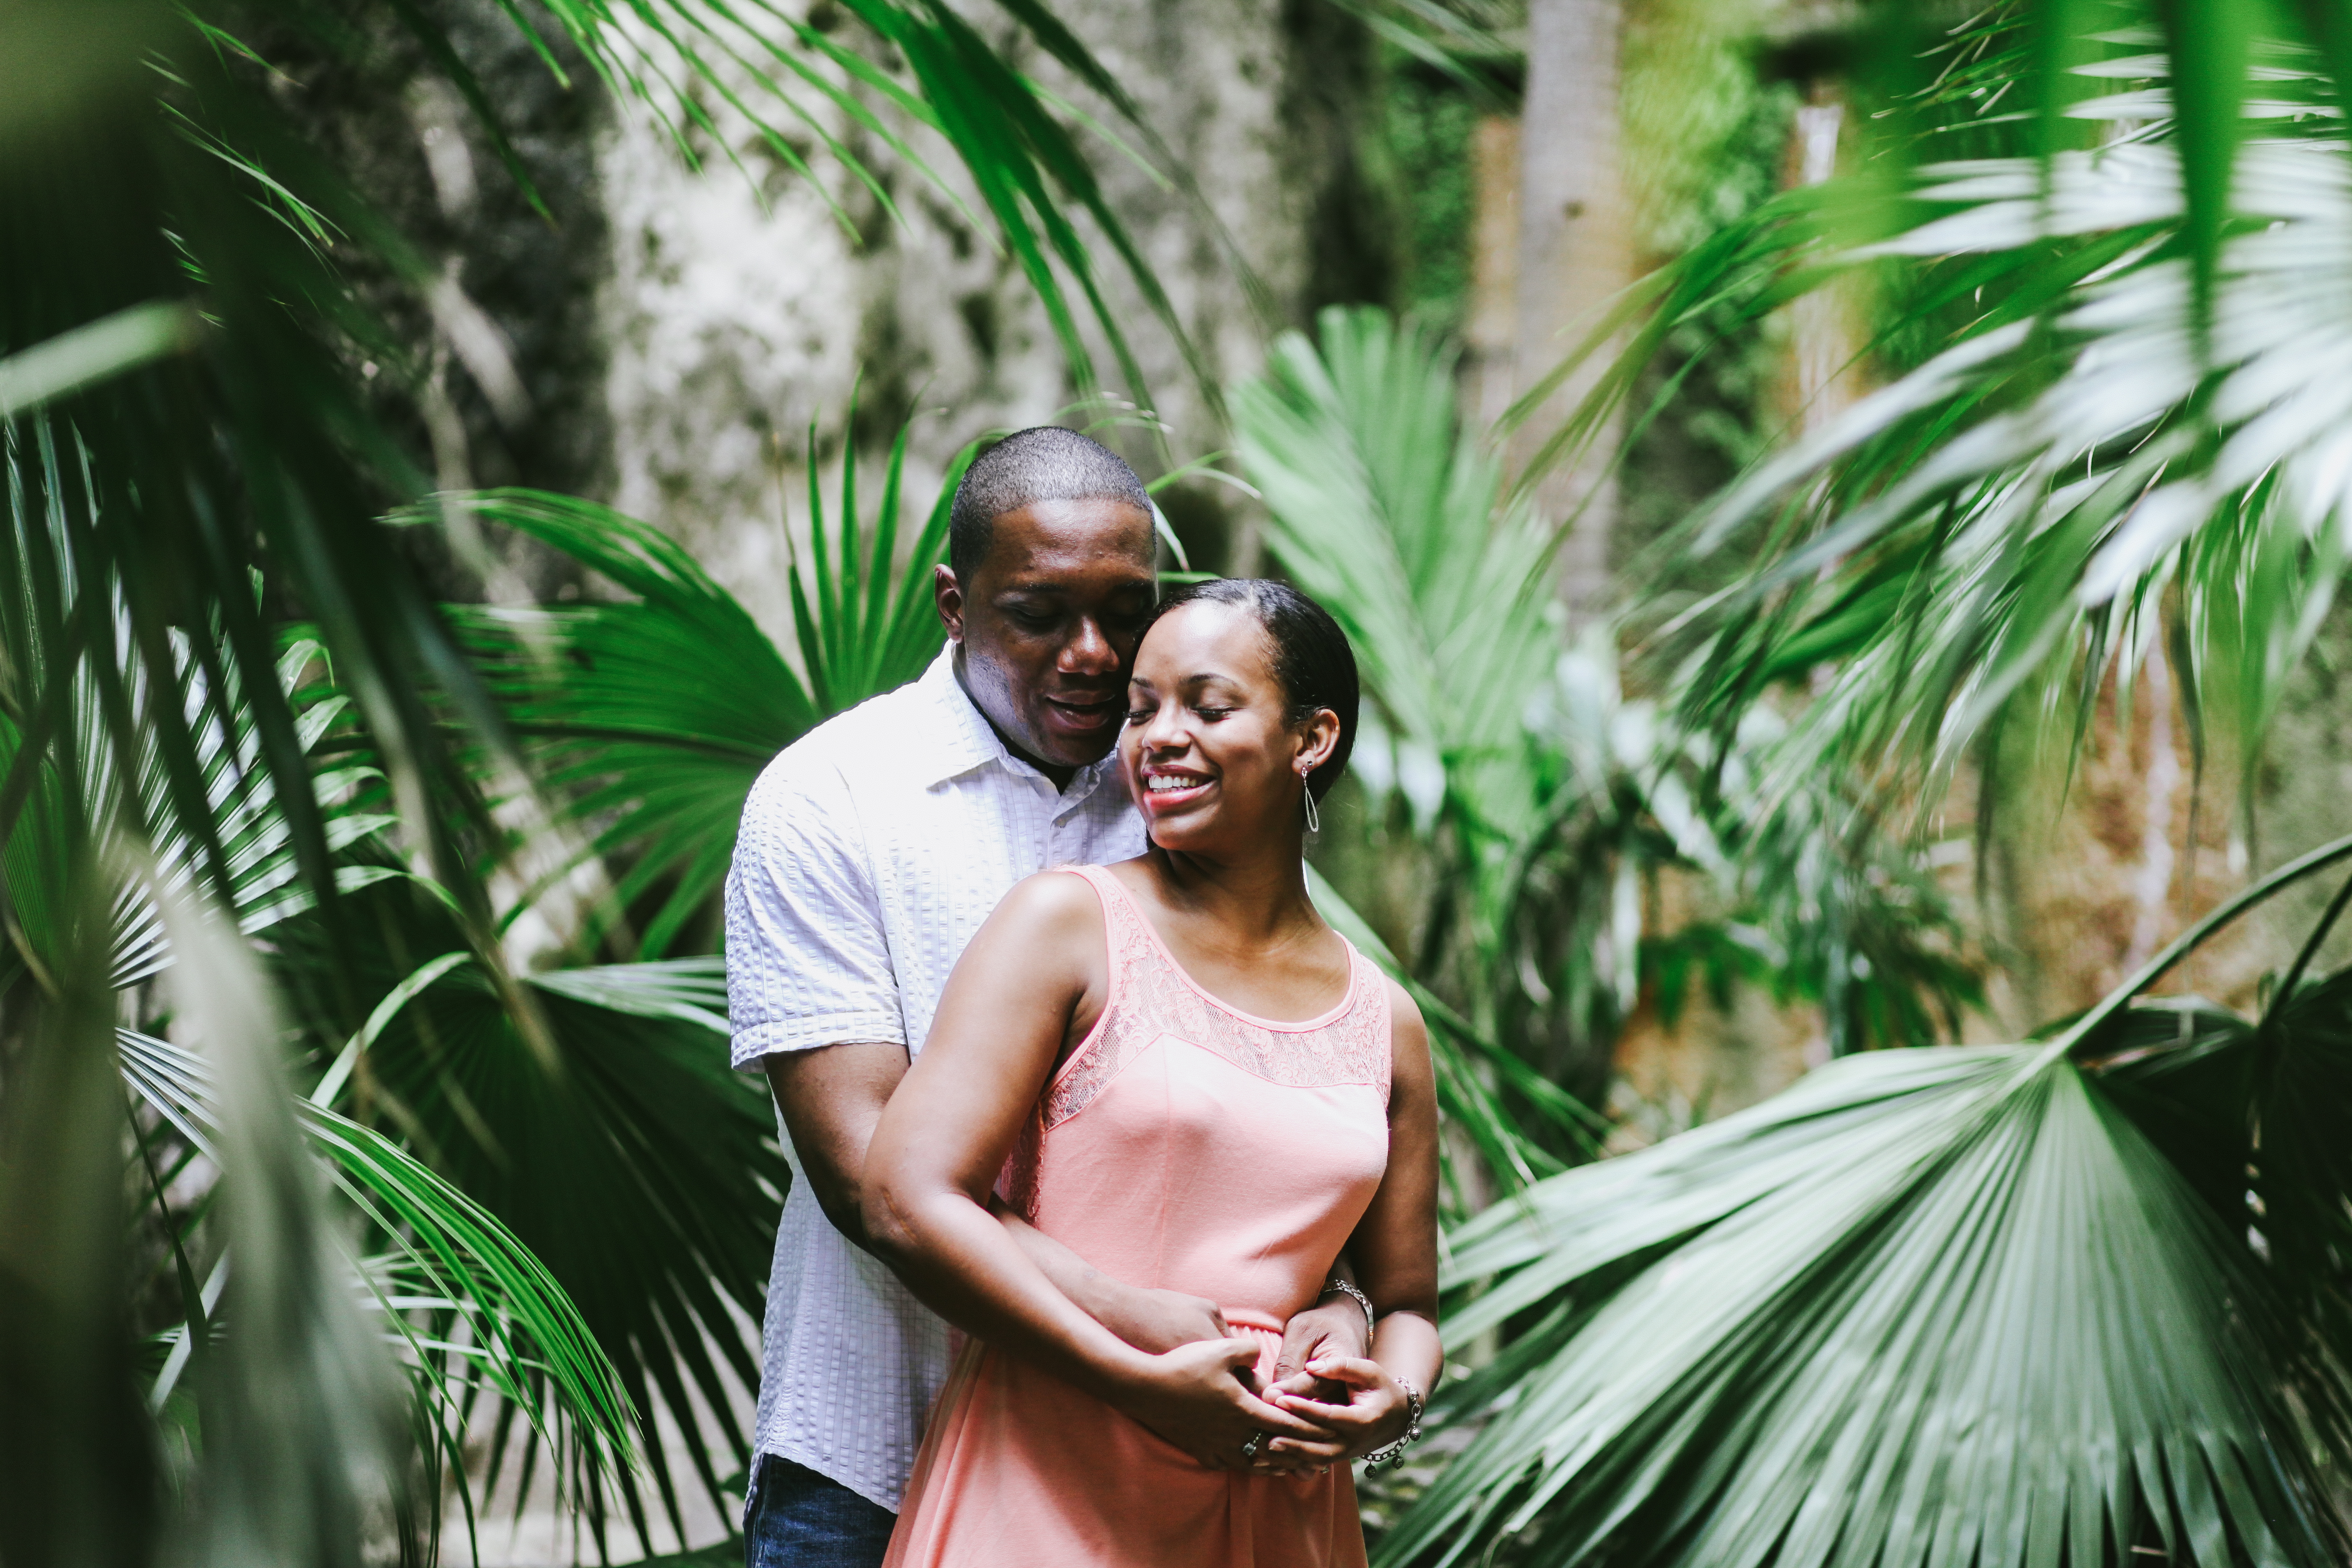 los angeles international destination wedding photographer elopement bahamas location tips